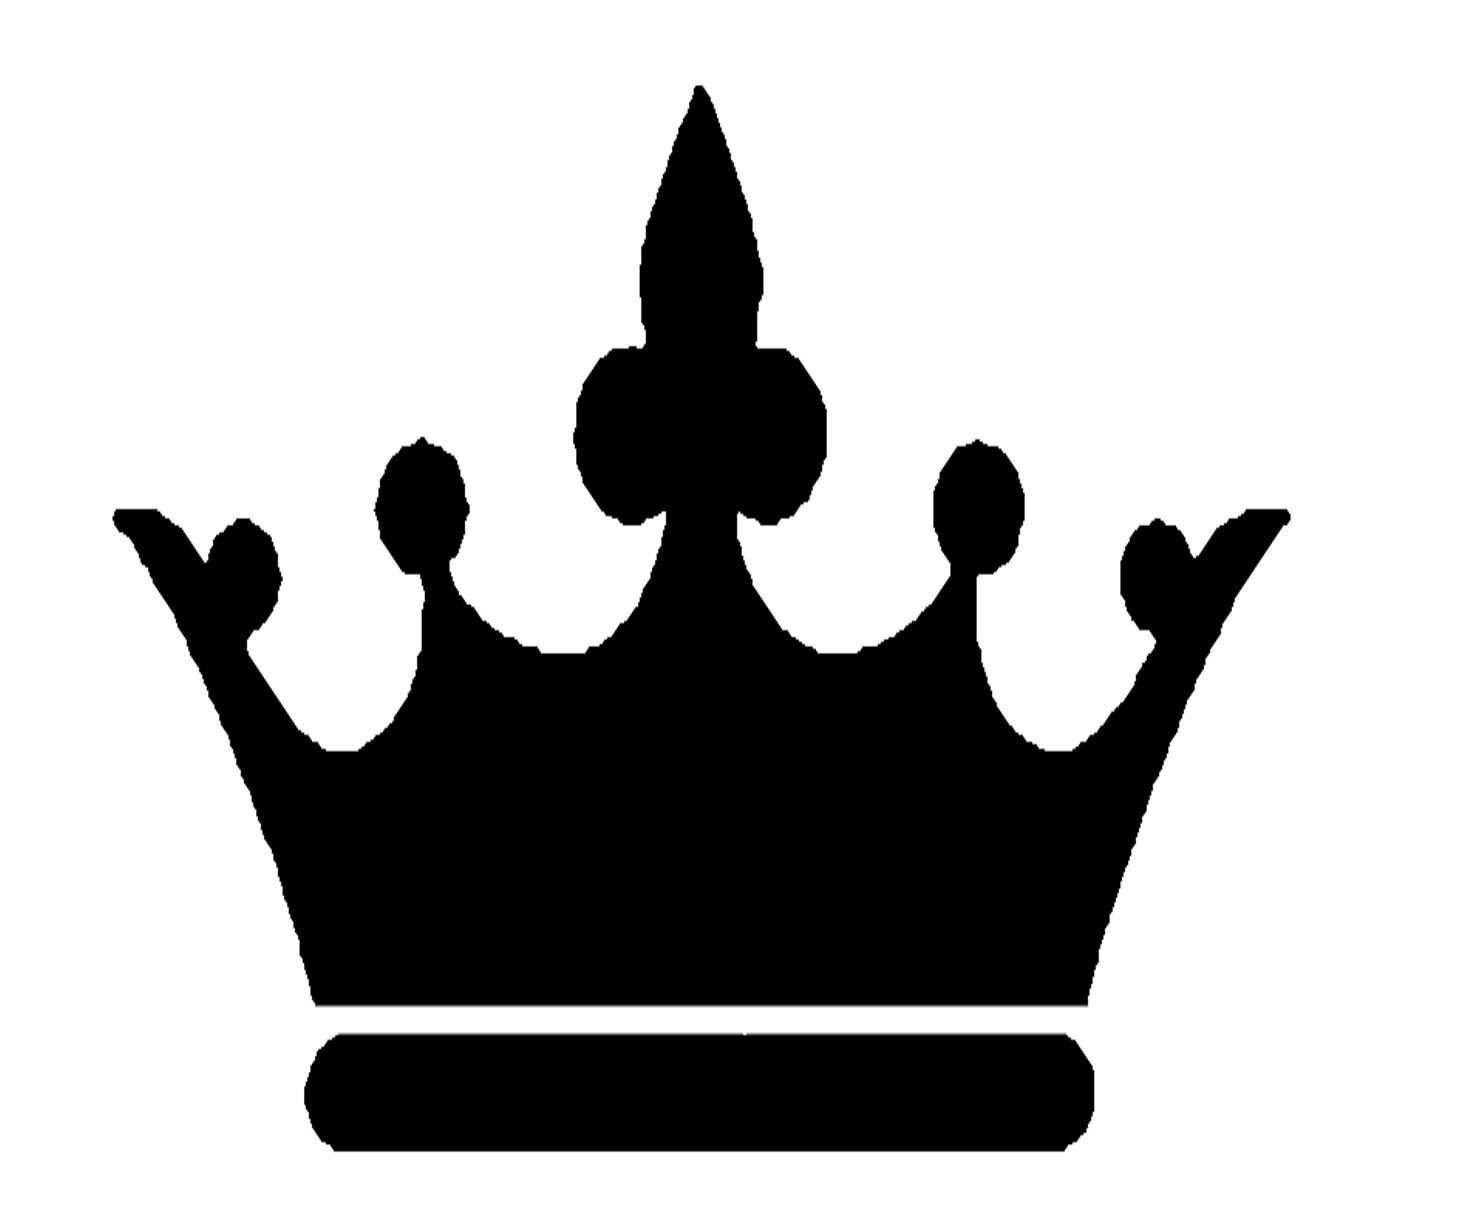 Clip Art Crown Clipart Black And White crown black and white clipart kid 12 simple free cliparts that you can download to you